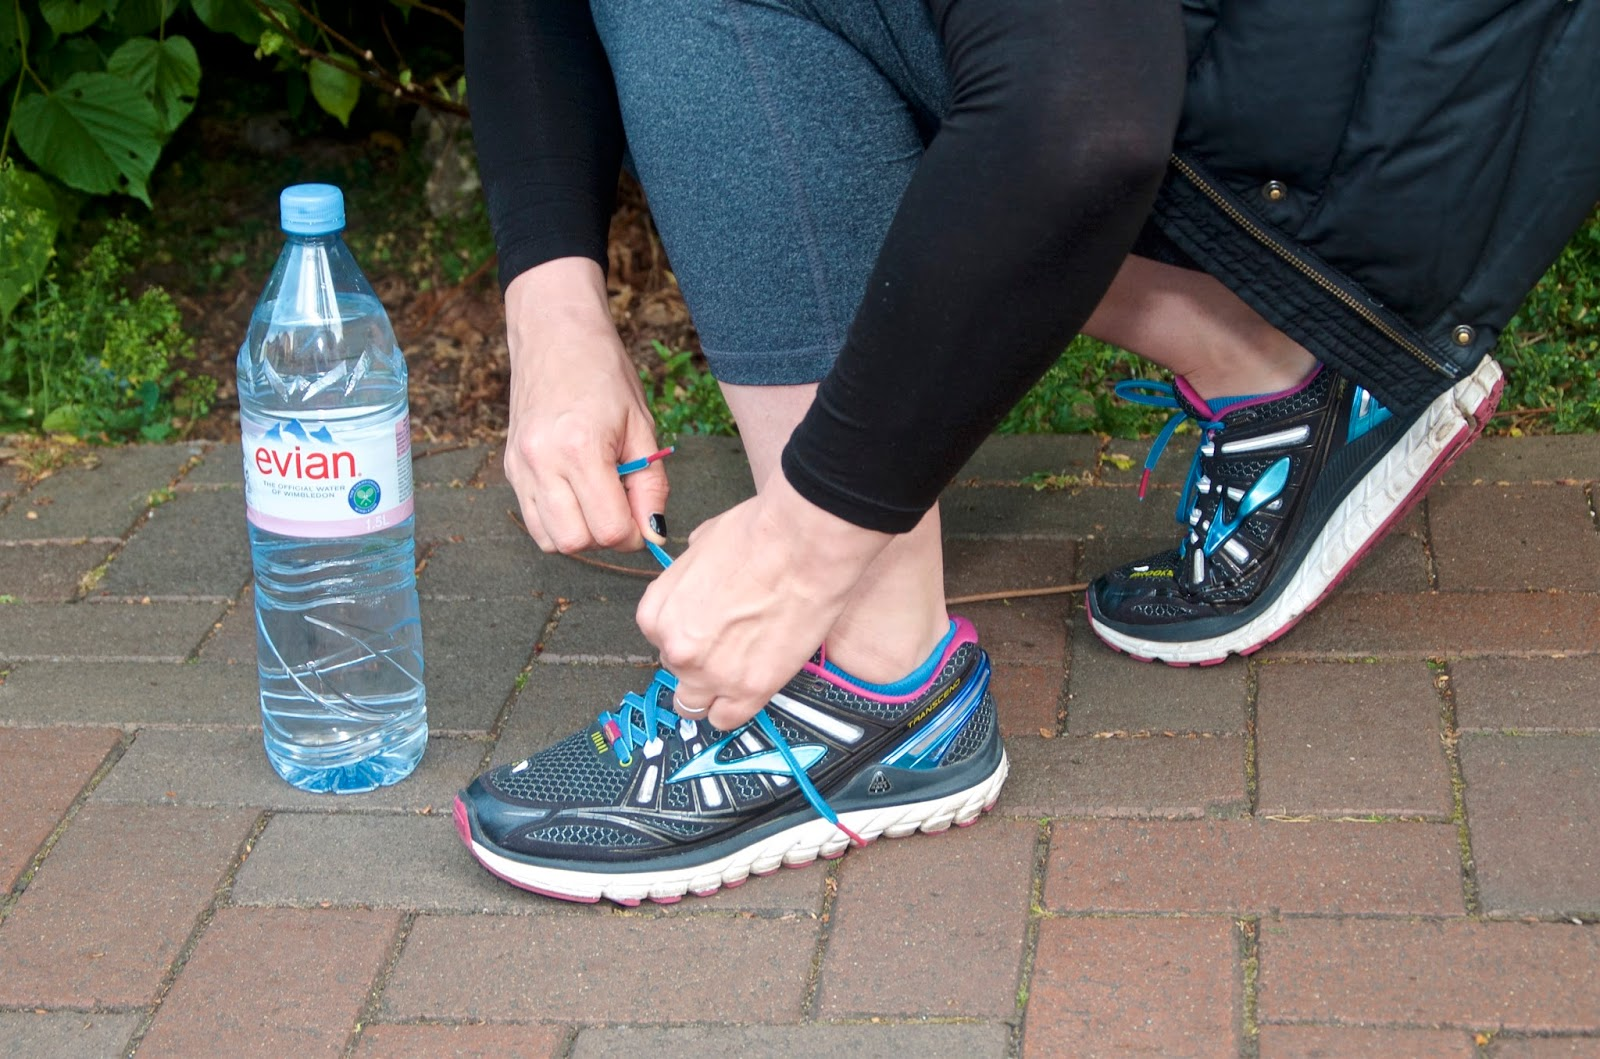 Evian water bottle, running shoes